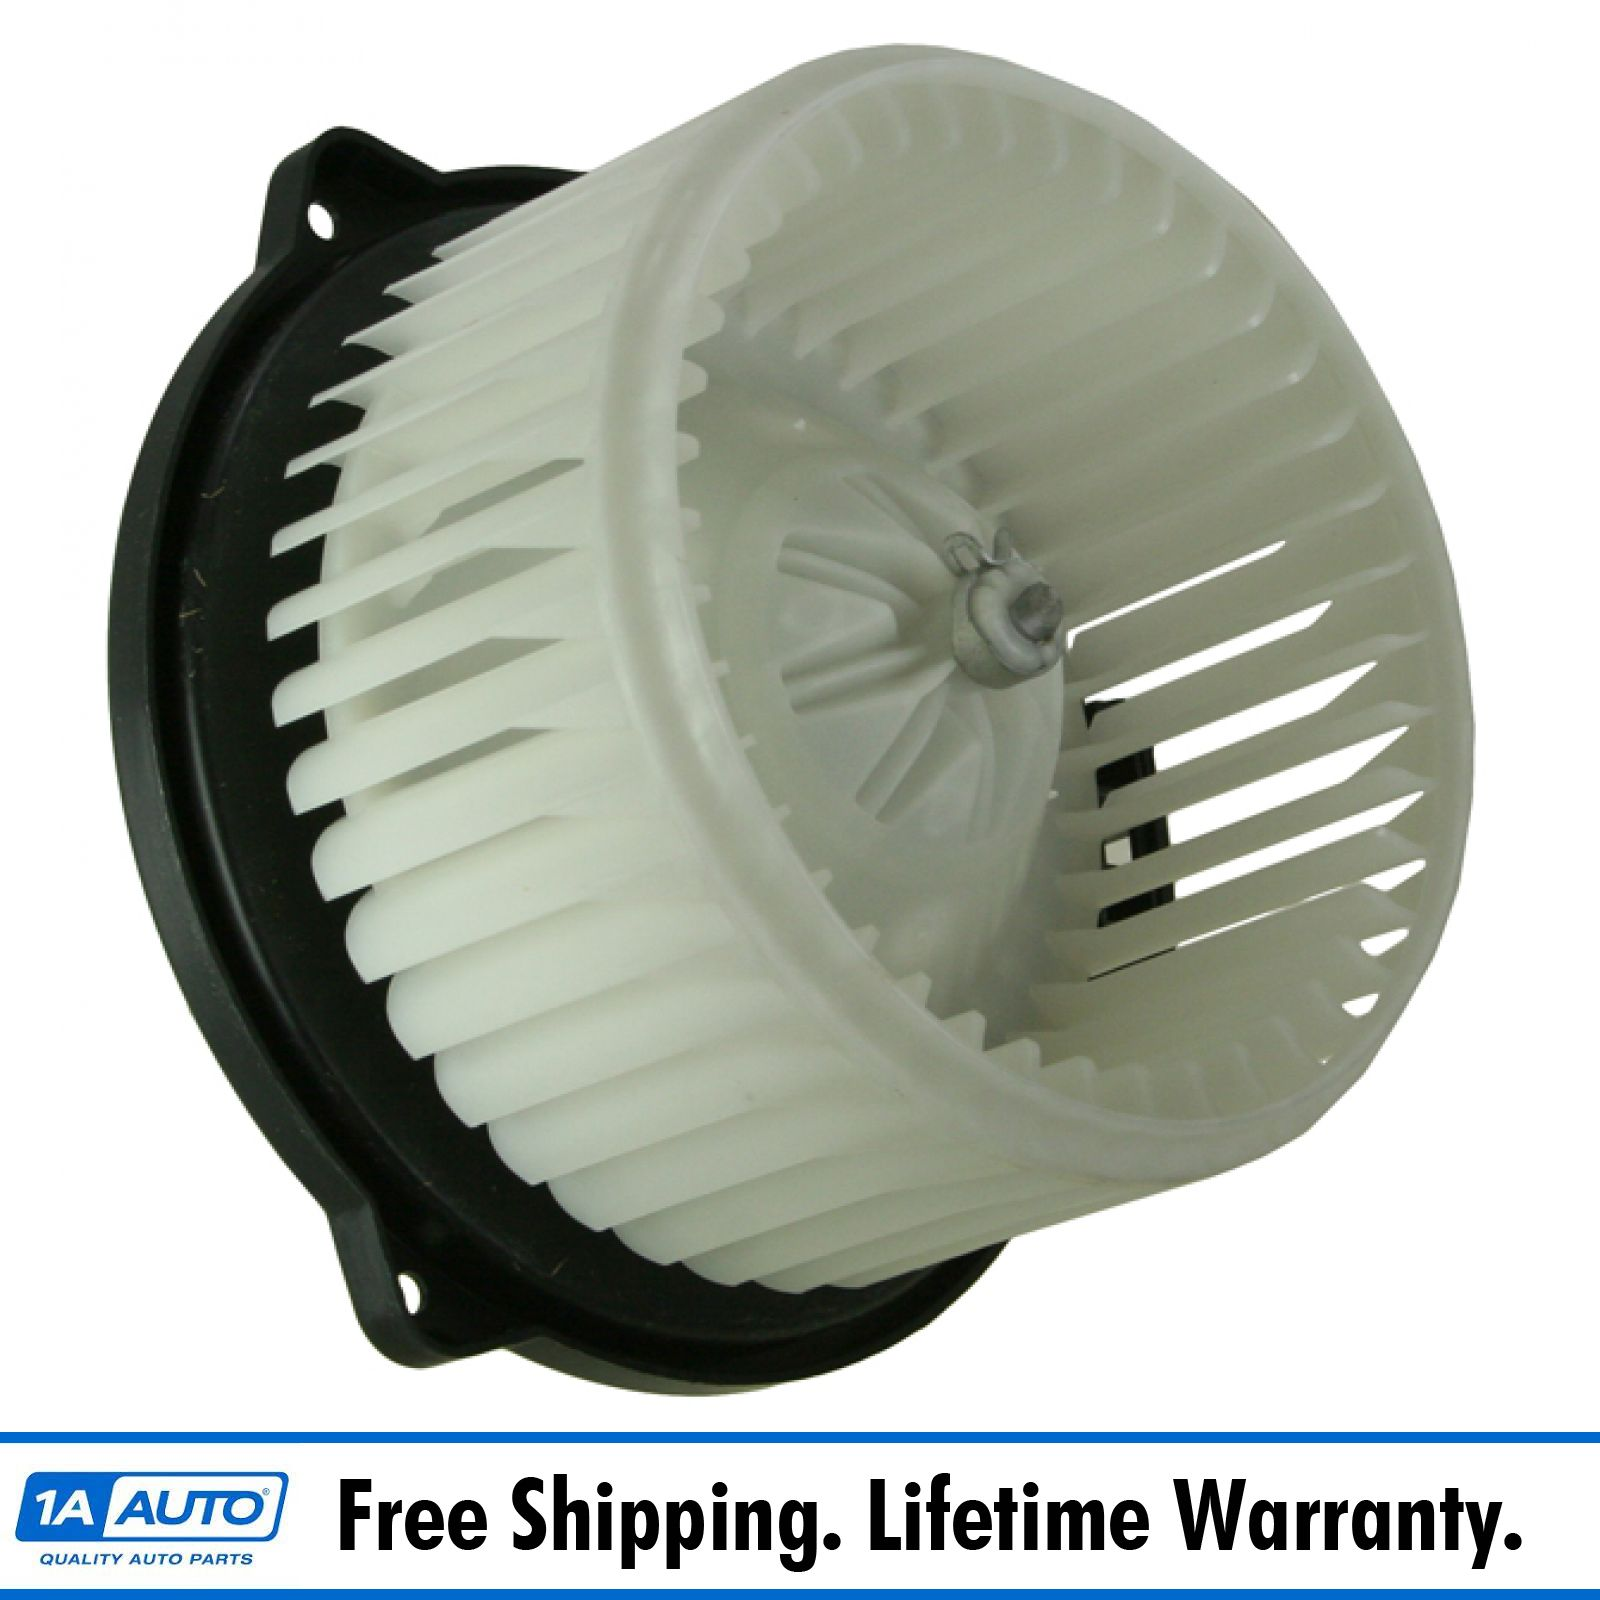 Heater A//C AC Blower Motor w// Fan Cage for 95-00 Ford Mystique Contour